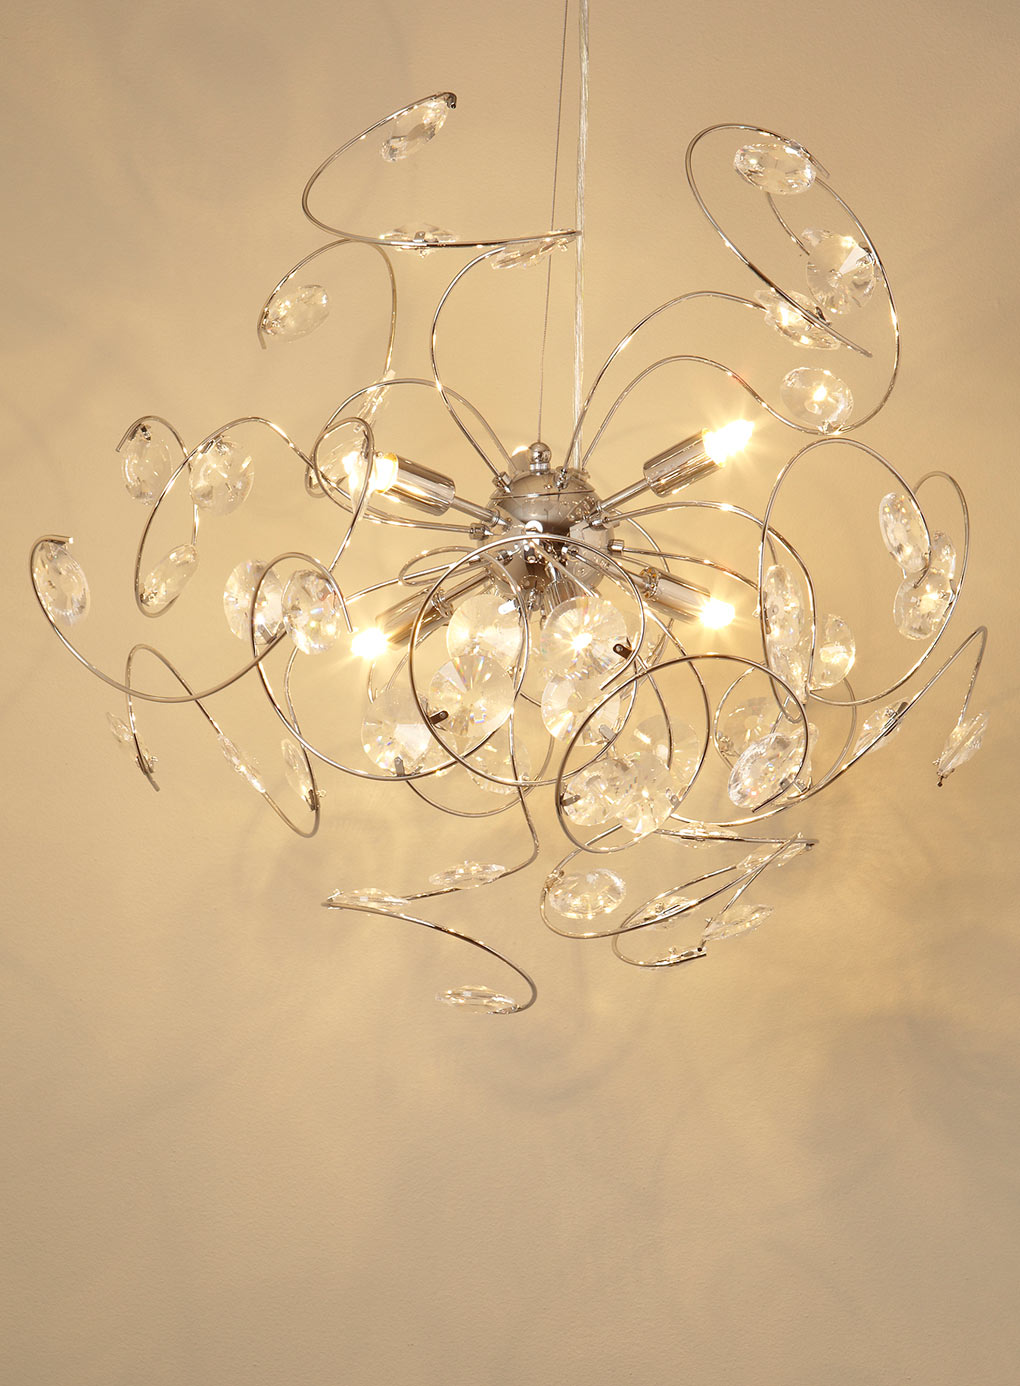 Bhs Ceiling Light Quench Your Thirst For Beauty And